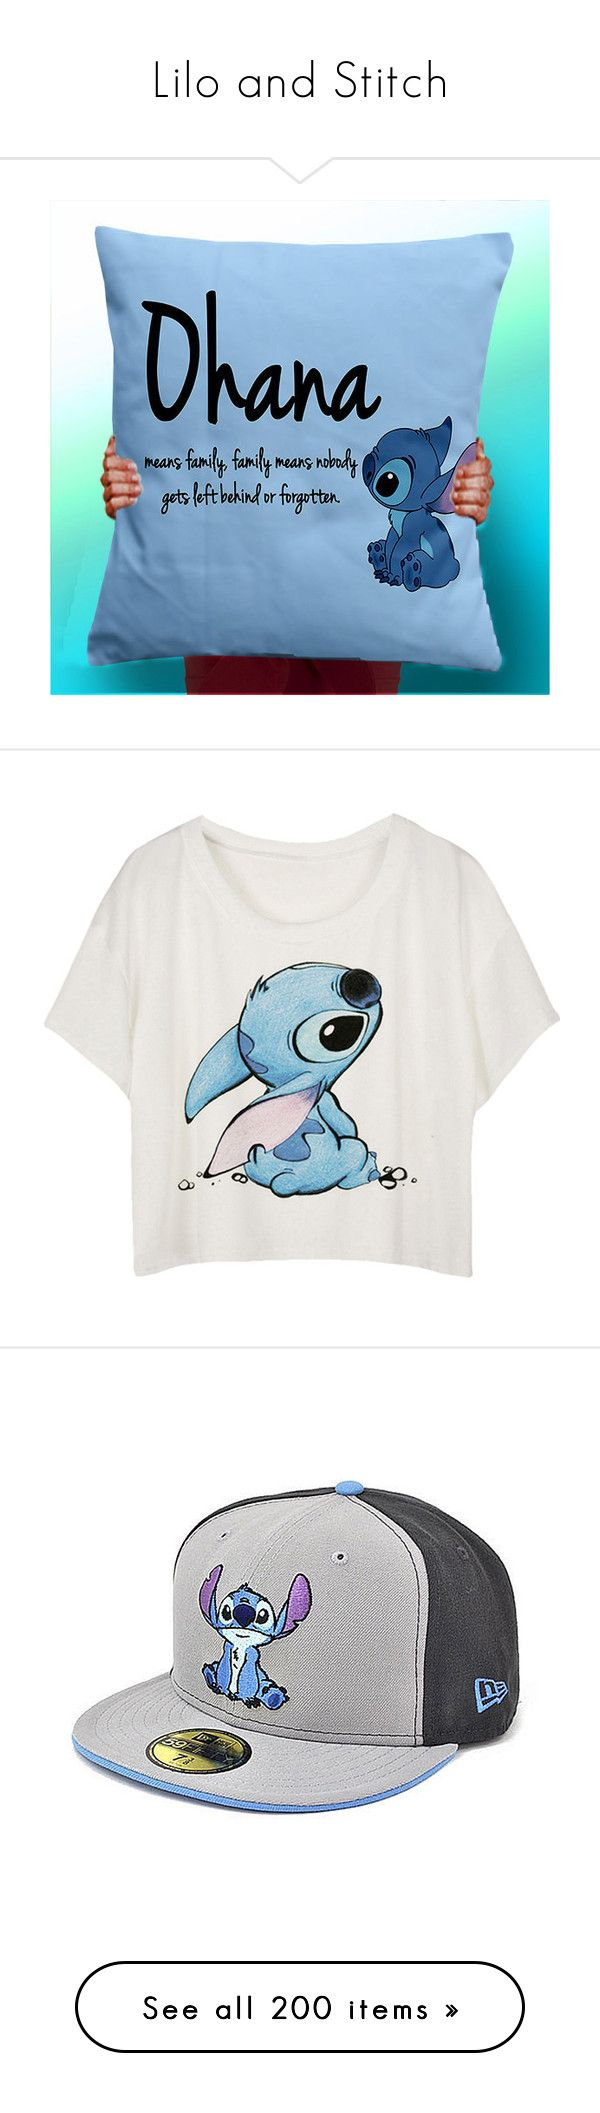 """""""Lilo and Stitch"""" by dani-loves-wwe-music ❤ liked on Polyvore featuring home, home decor, decorative pillows, home & living, home décor, light purple, handmade home decor, tops, t-shirts and shirts"""